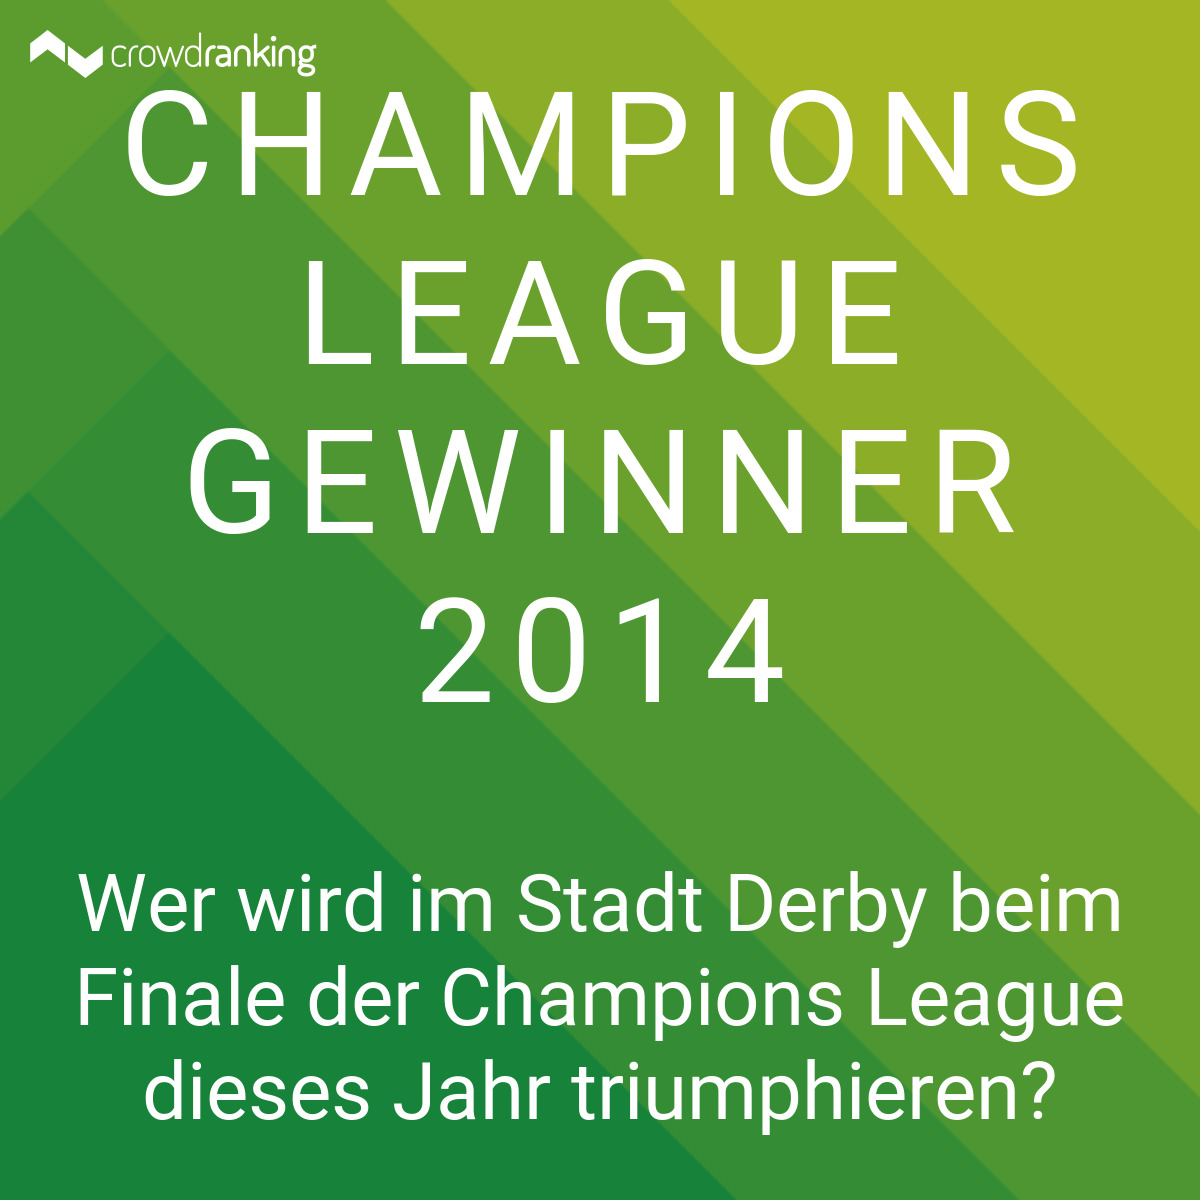 champion league gewinner